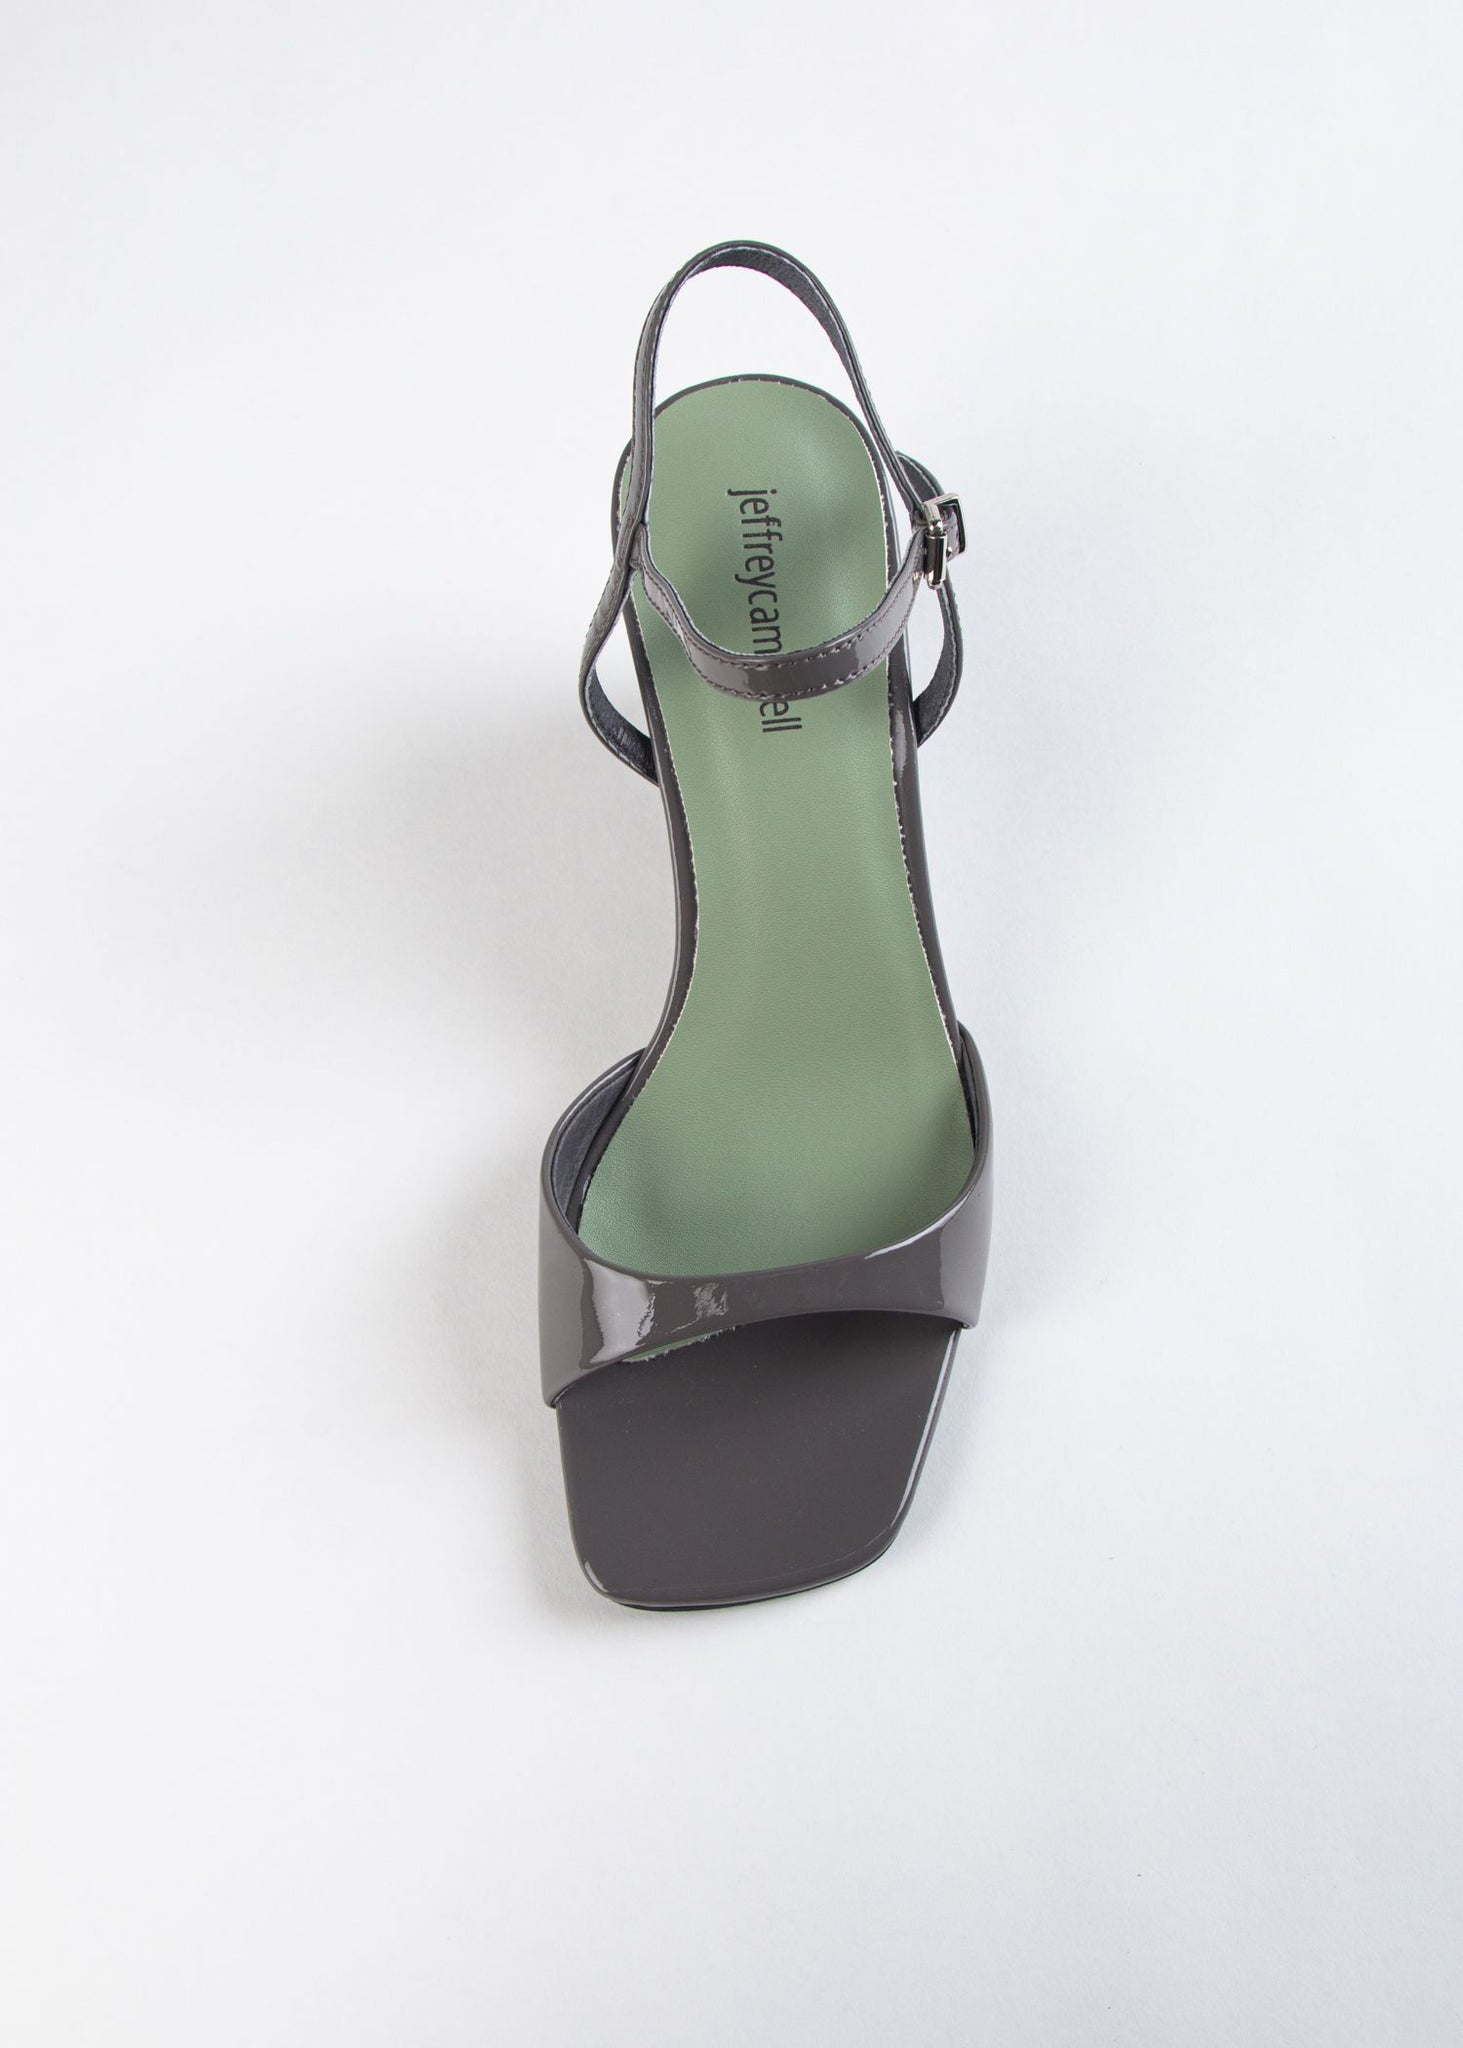 ENTREE PATENT WEDGE SANDAL